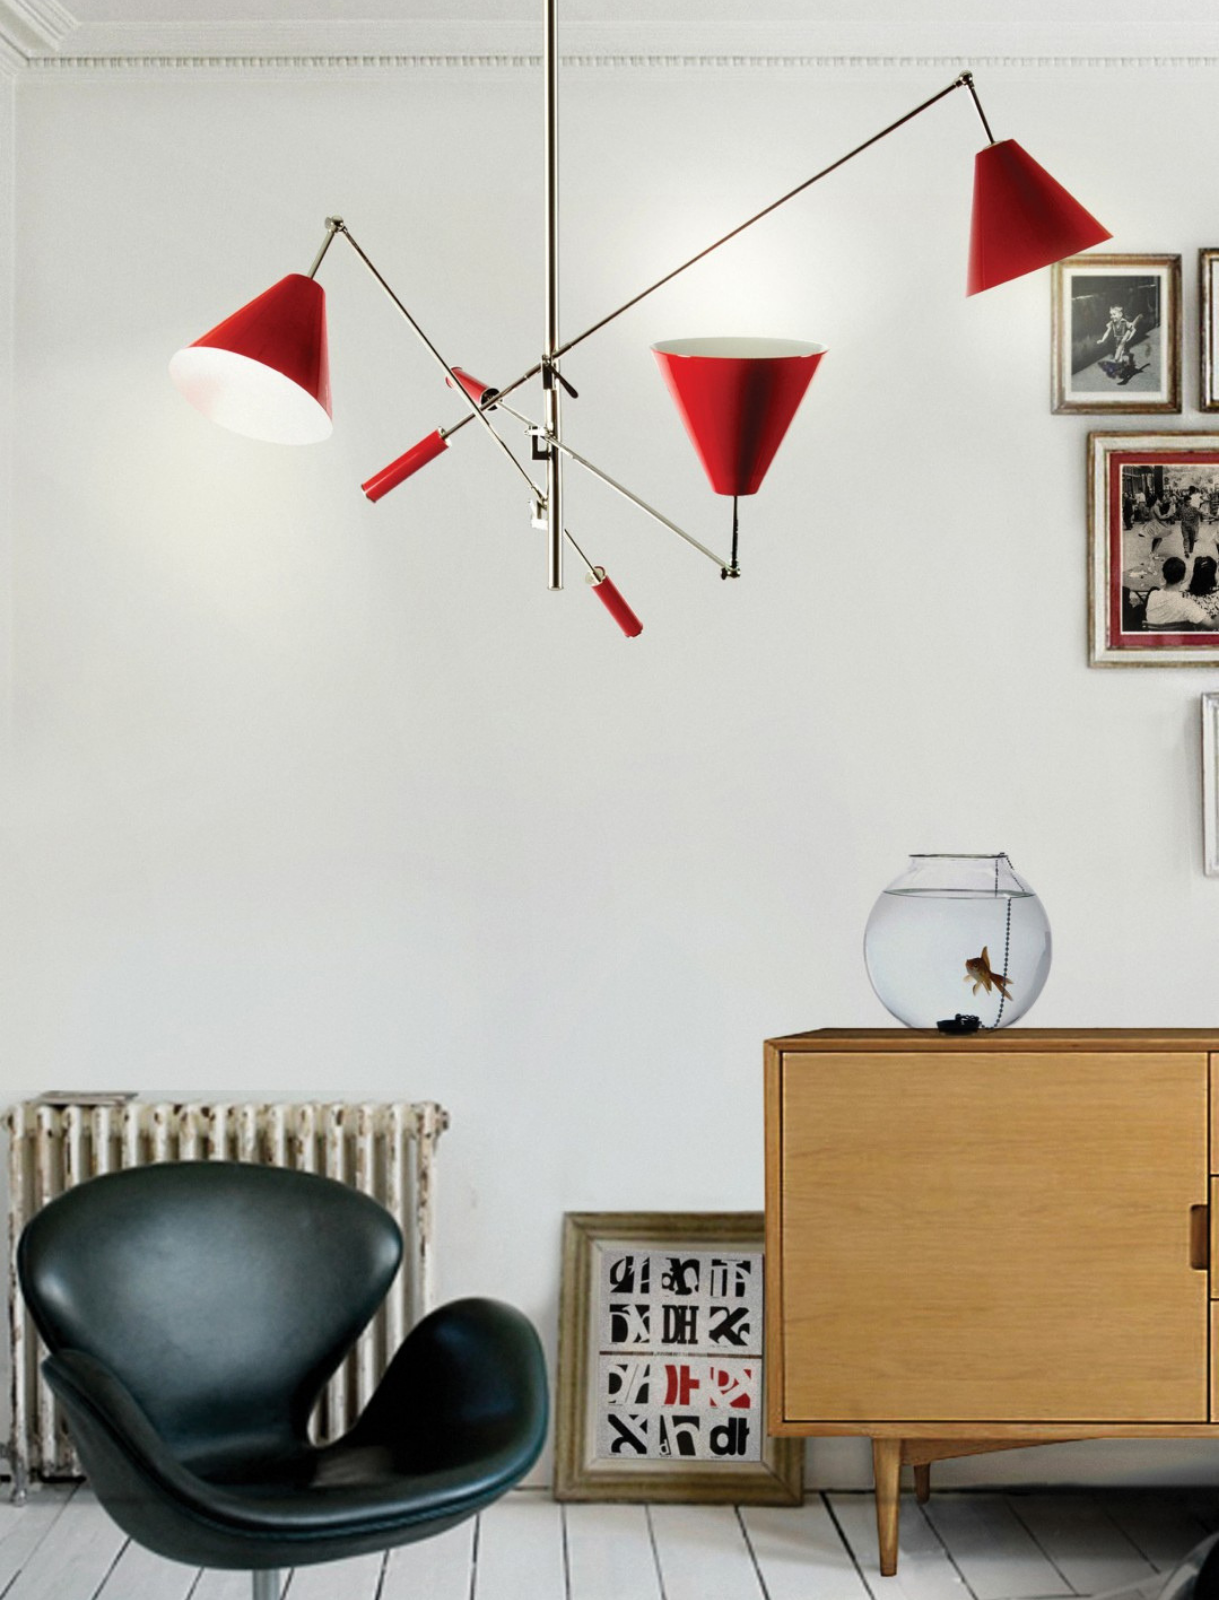 Modern Home Decor Secrets With White and Red Hues